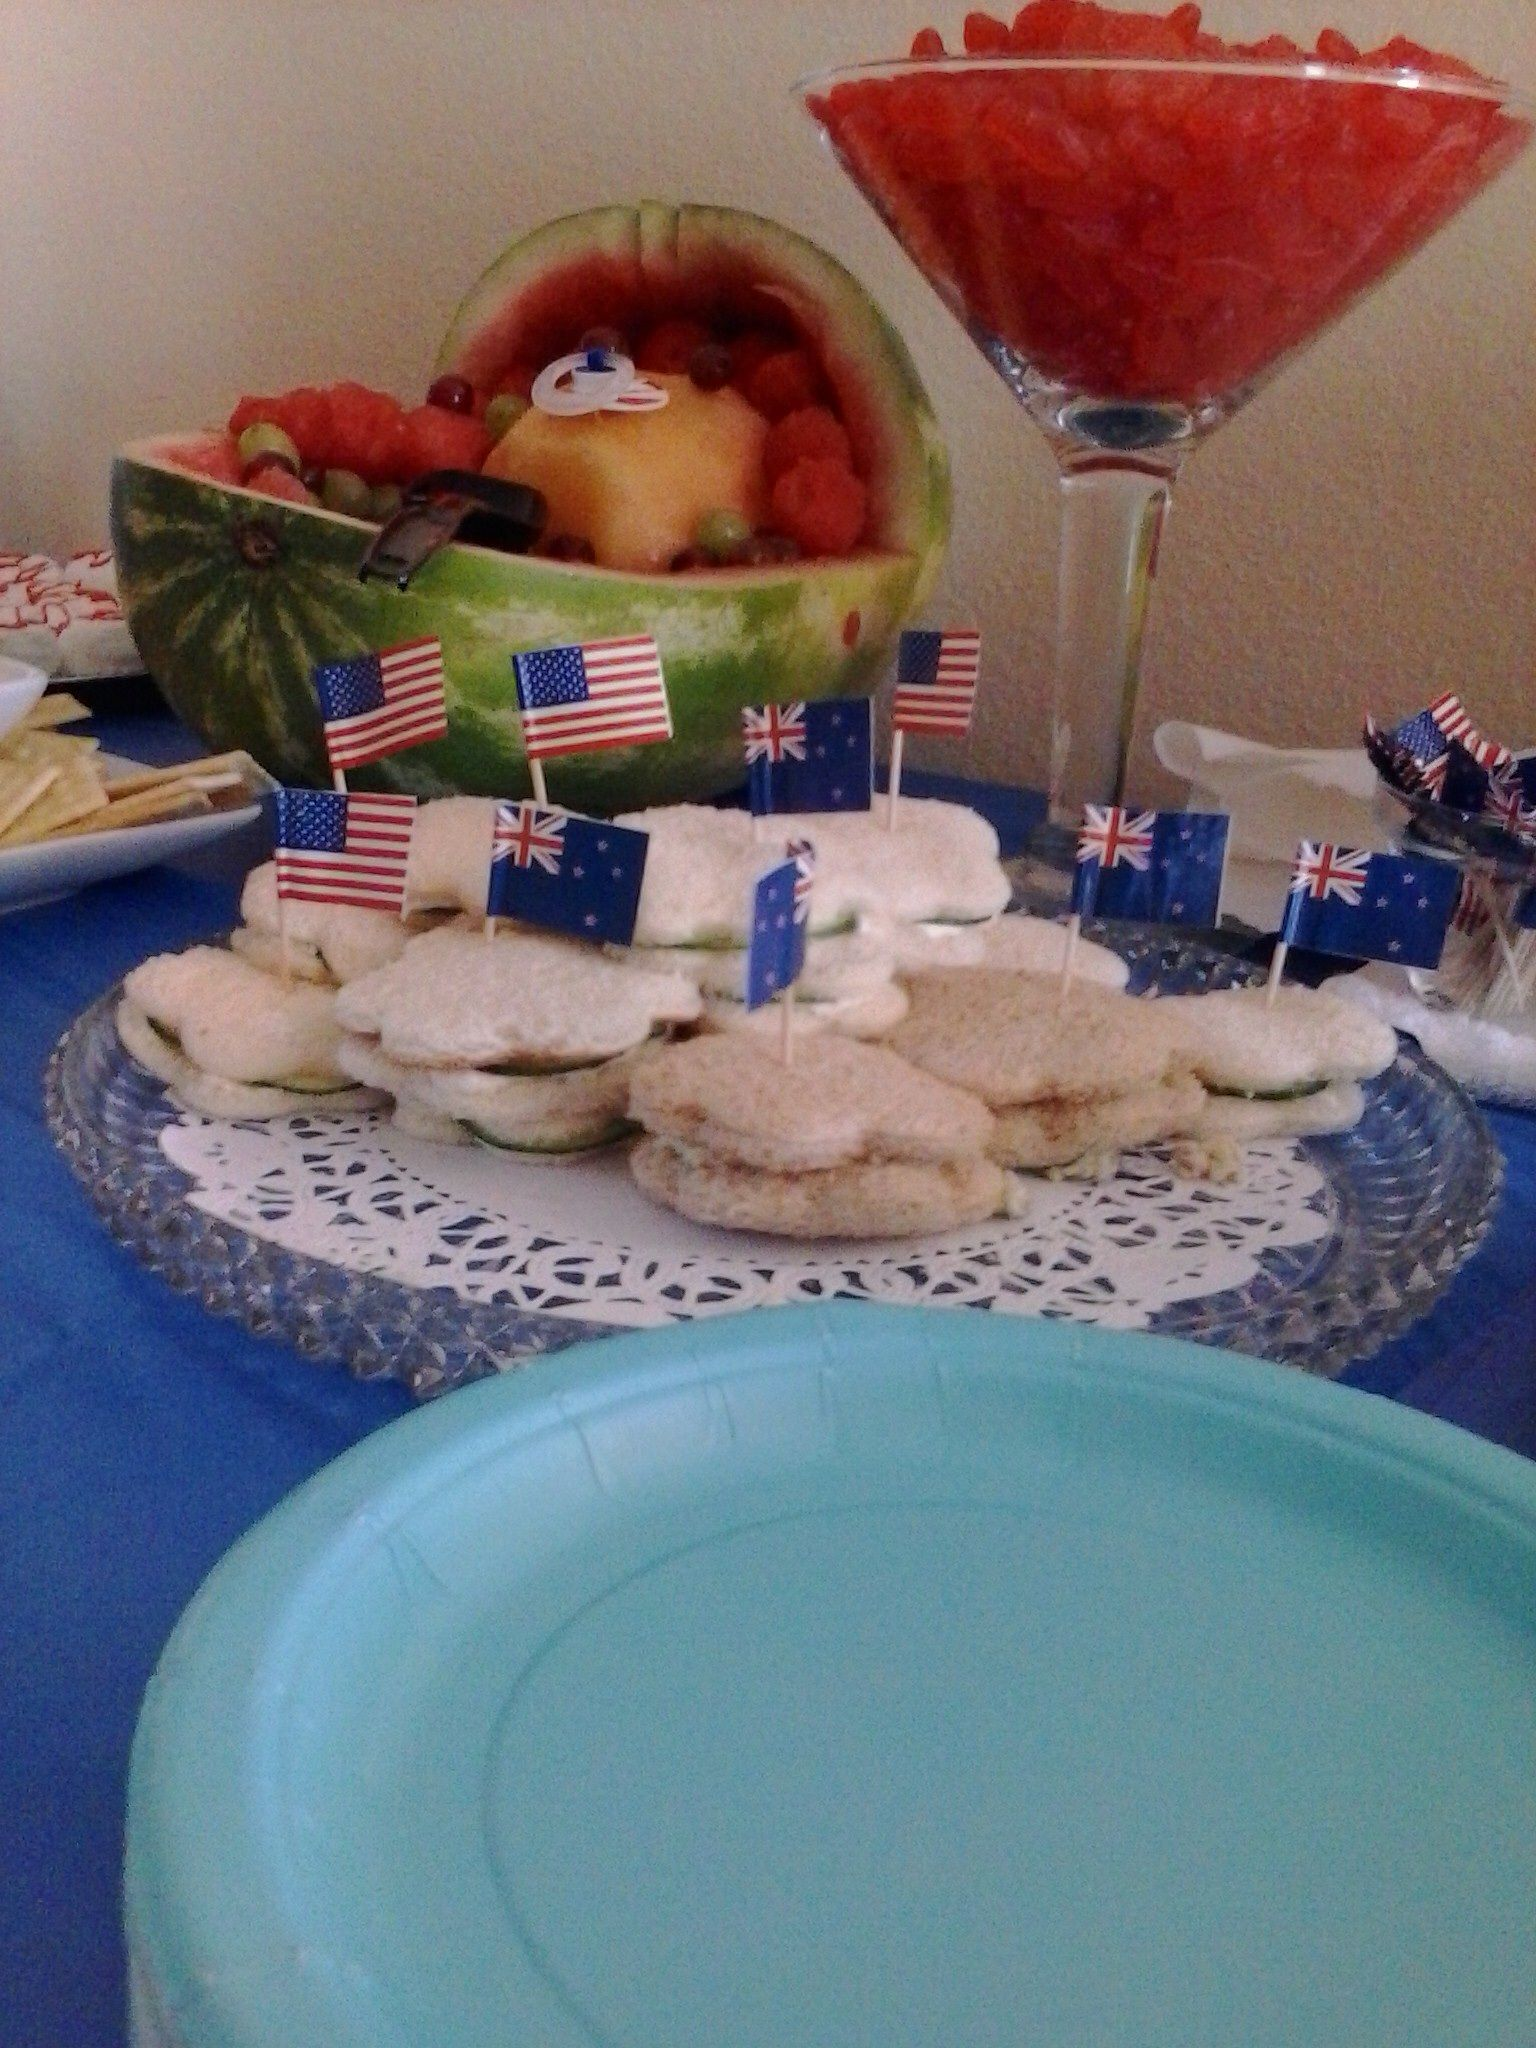 """Had an """"Ahoy it's a boy"""" themed baby shower. The father is from New Zealand and travels on yachts so I thought this was the perfect combination. The sandwiches had each flag in them, the watermelon was a baby, and the wine glass was full of Swedish fish"""